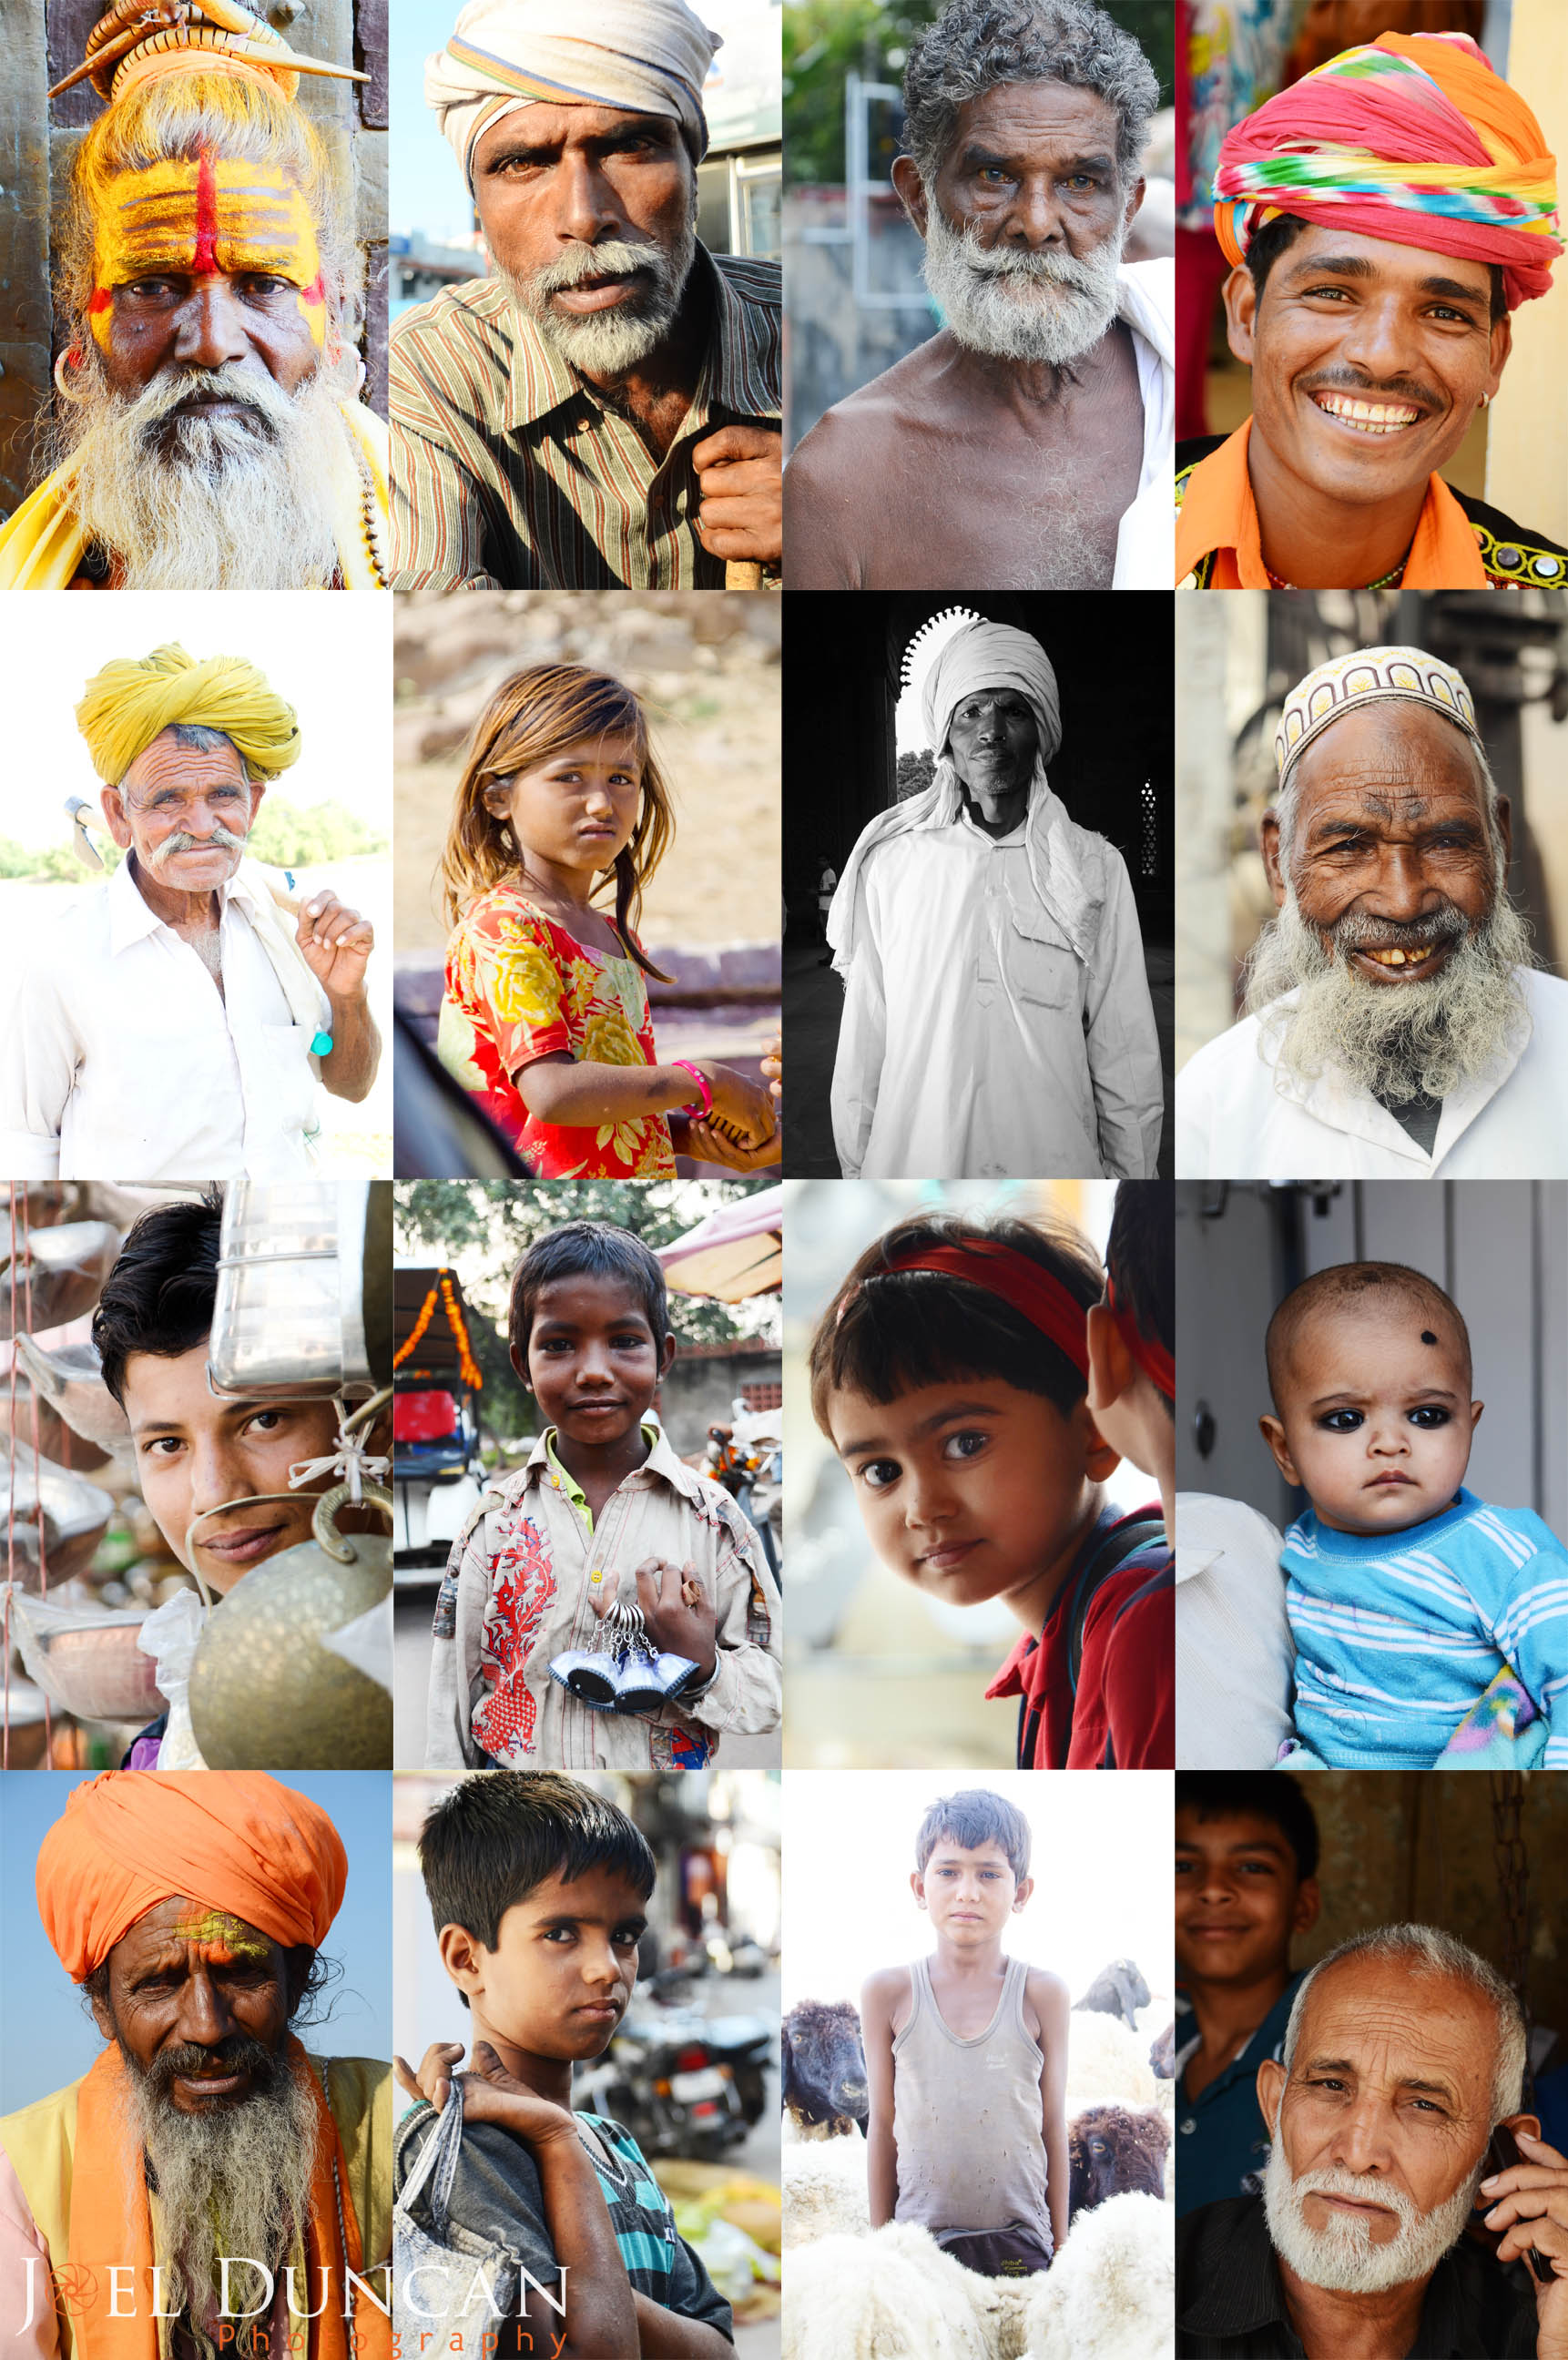 Facing the Streets India – Street Portrait Photography from India